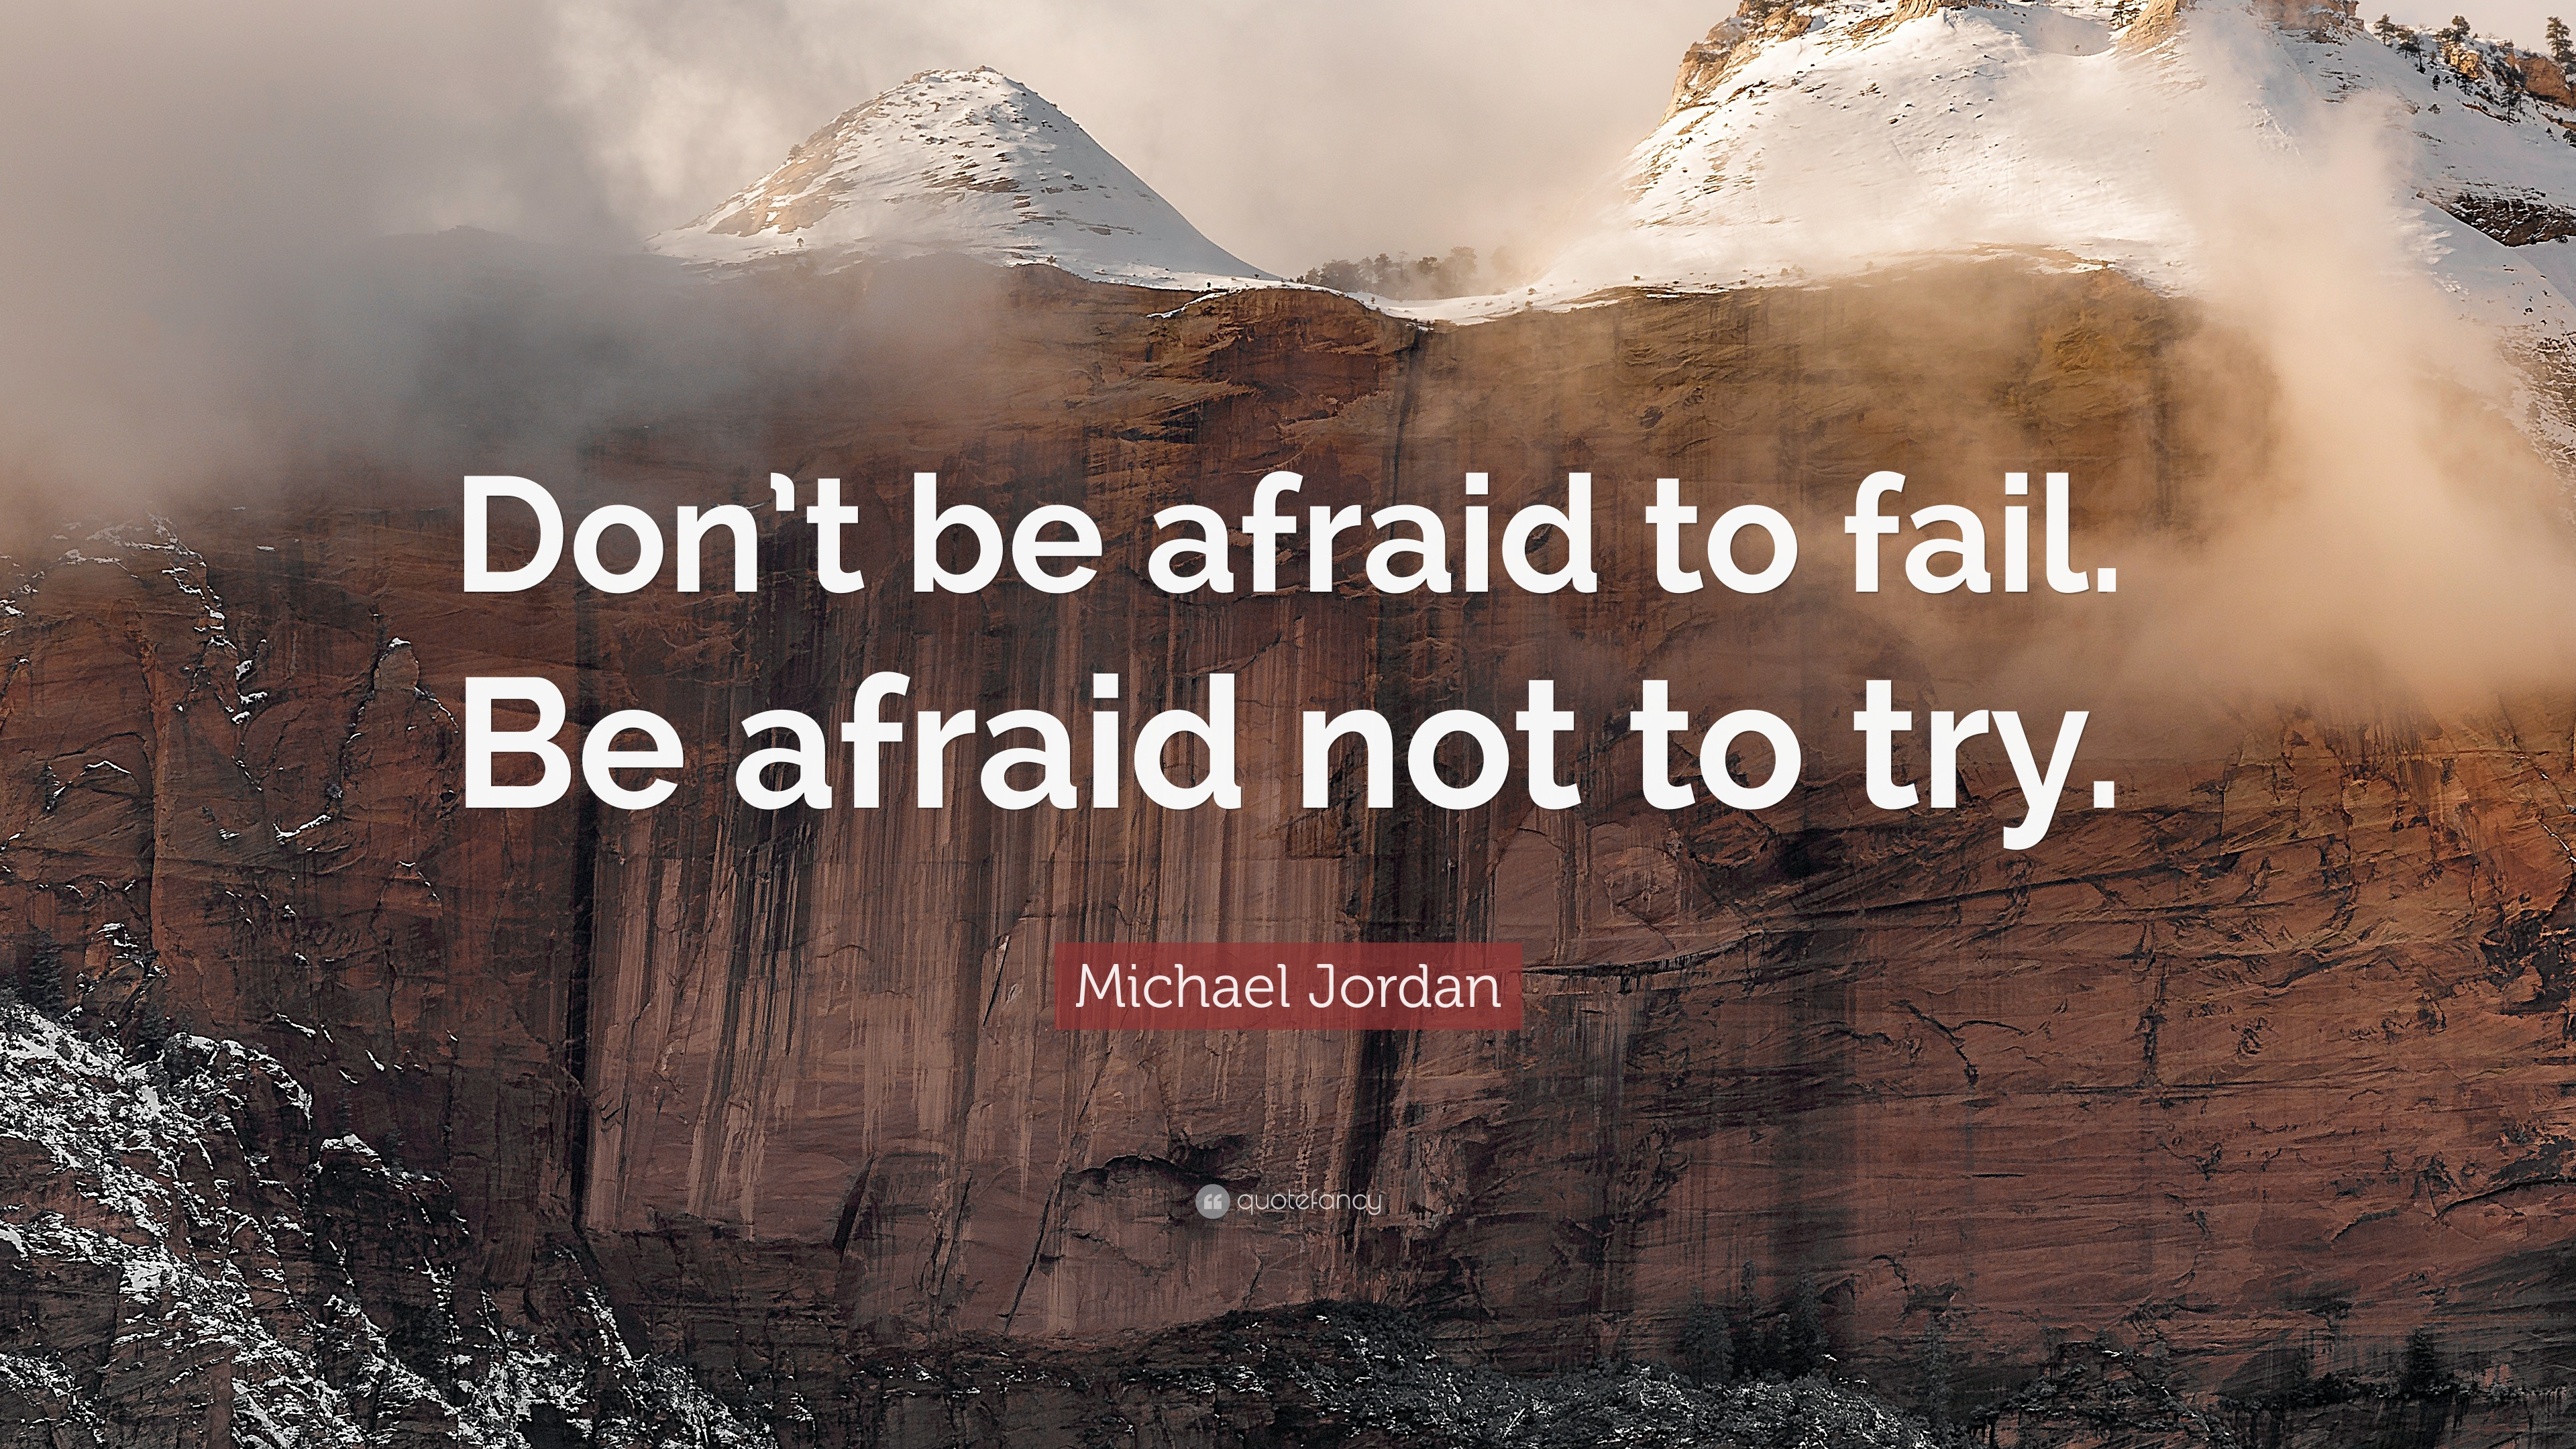 Nice Michael Jordan Quote: U201cDonu0027t Be Afraid To Fail. Be Afraid Not